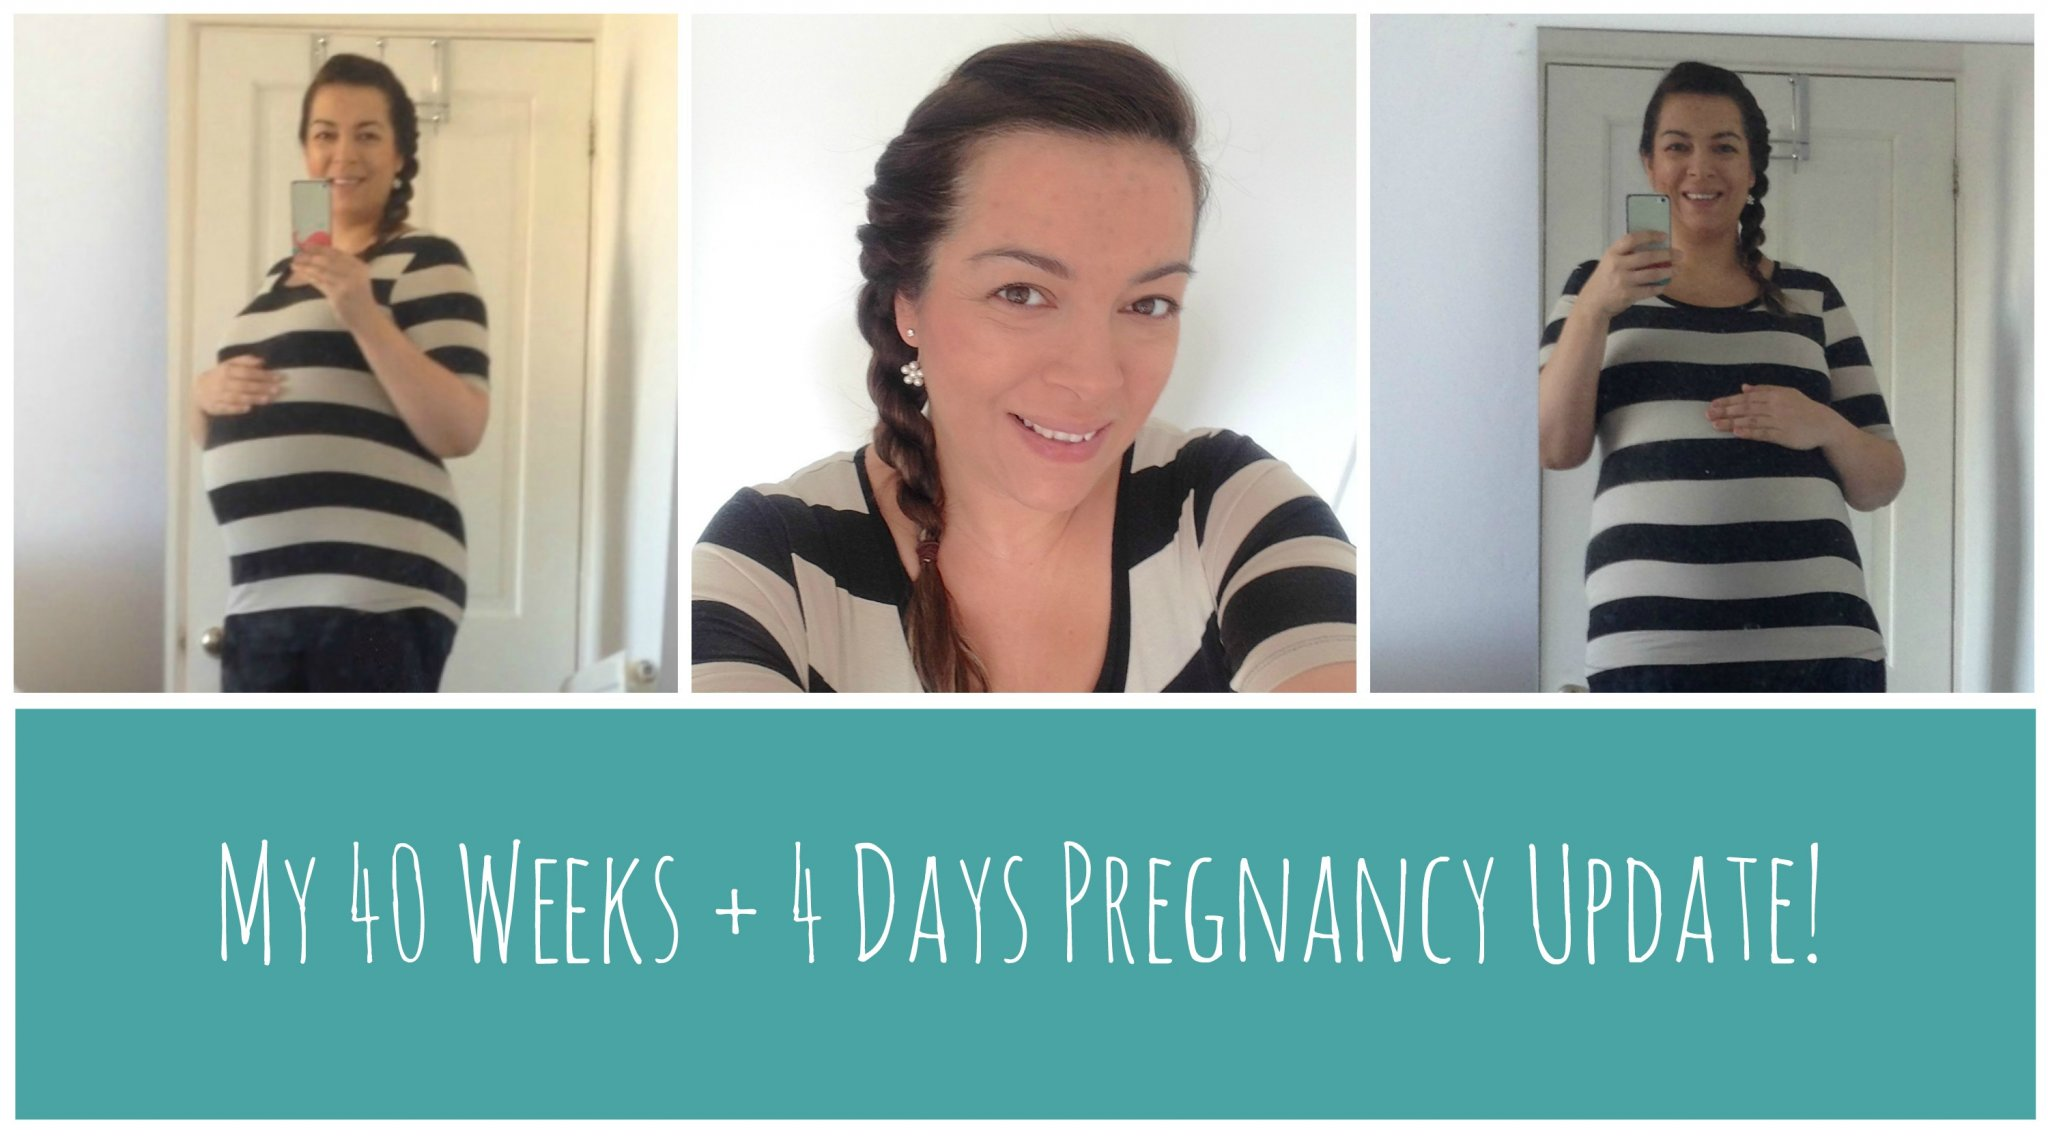 40 Weeks Pregnant + 4 Days Update - www.lovefrommim.com Overdue by 4 days 40 plus 4 weeks pregnant